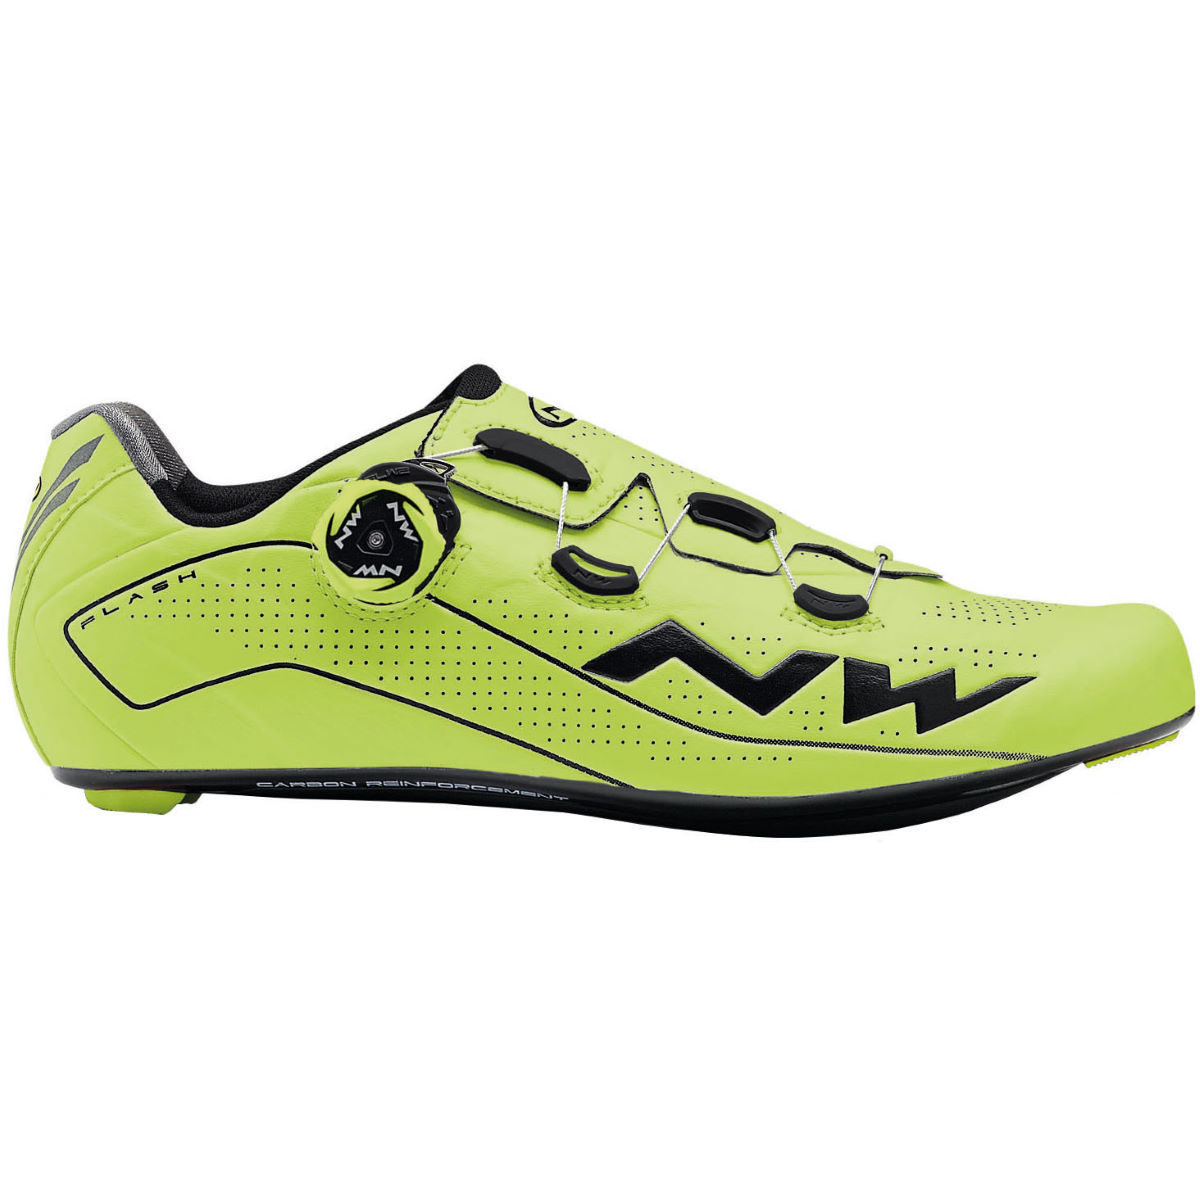 Chaussures de route Northwave Flash - 41 Yellow Fluo